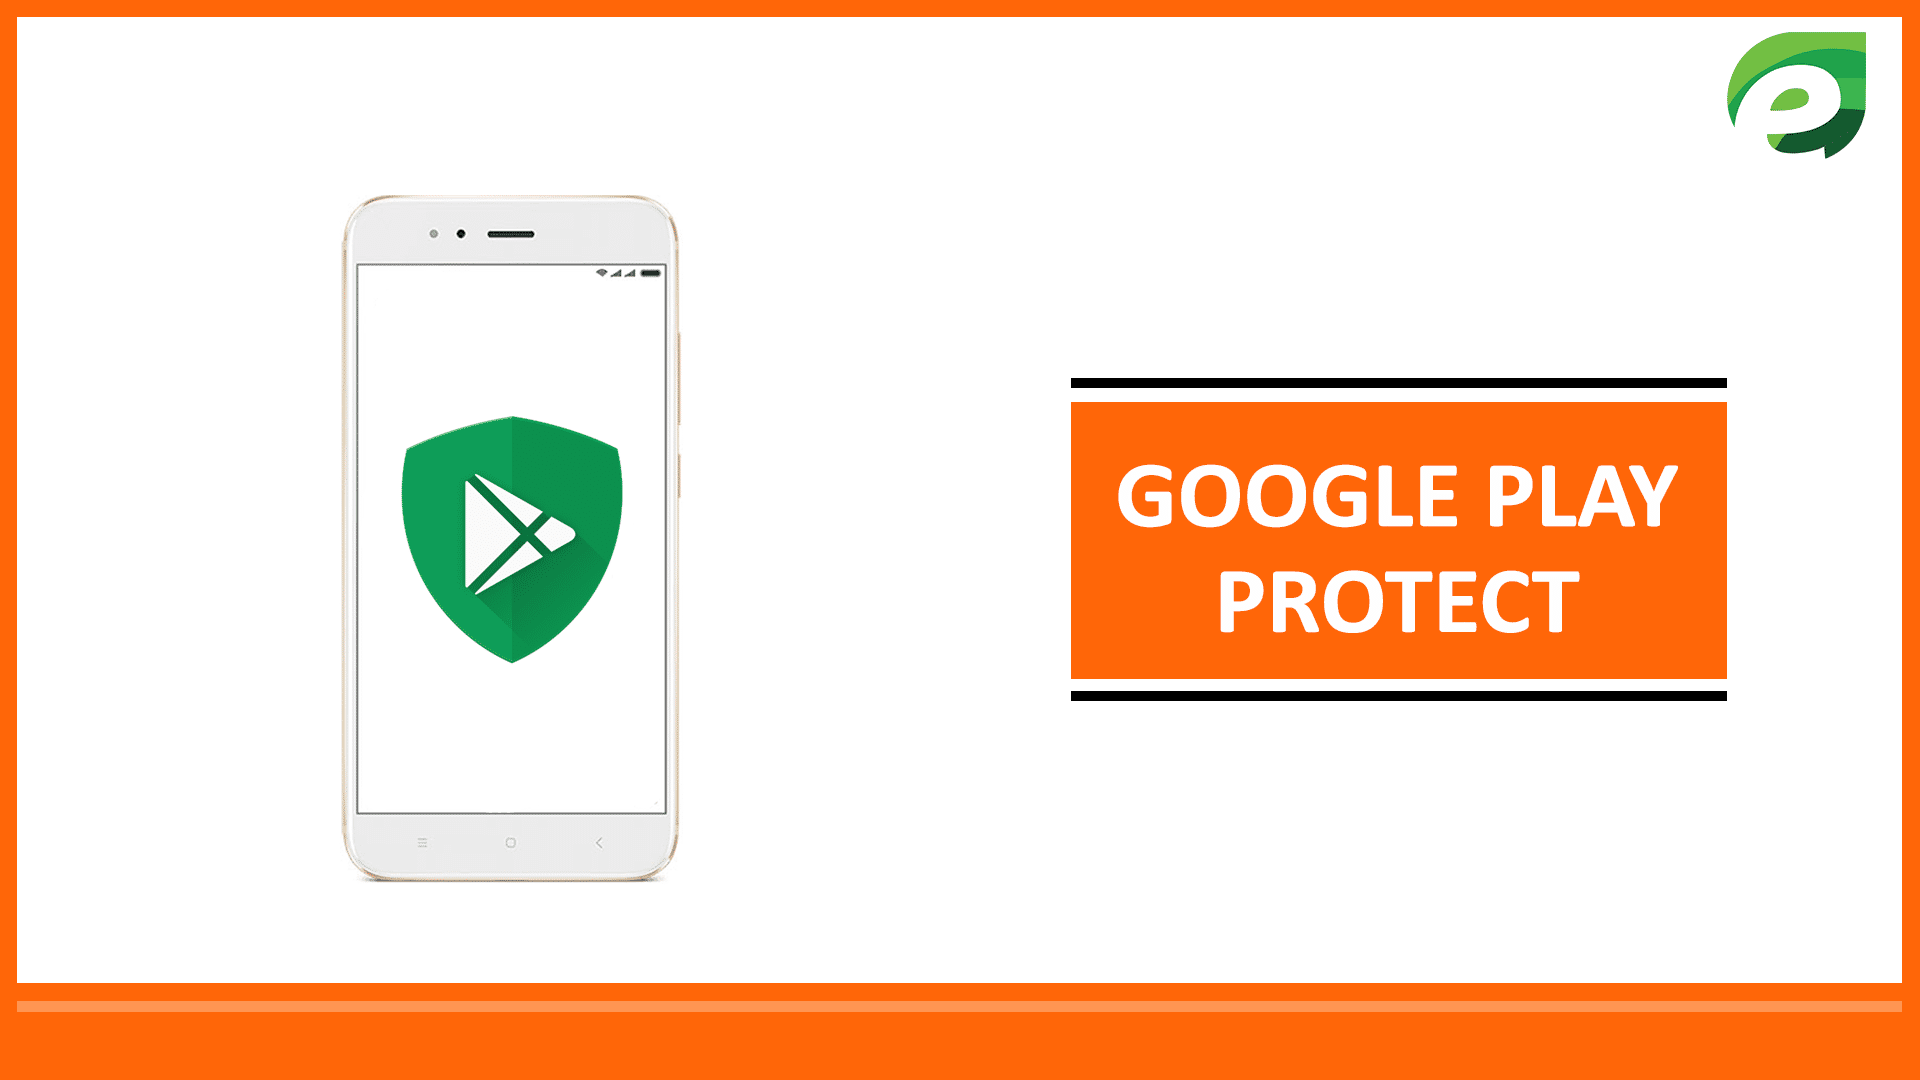 Mi A1- Google play protect